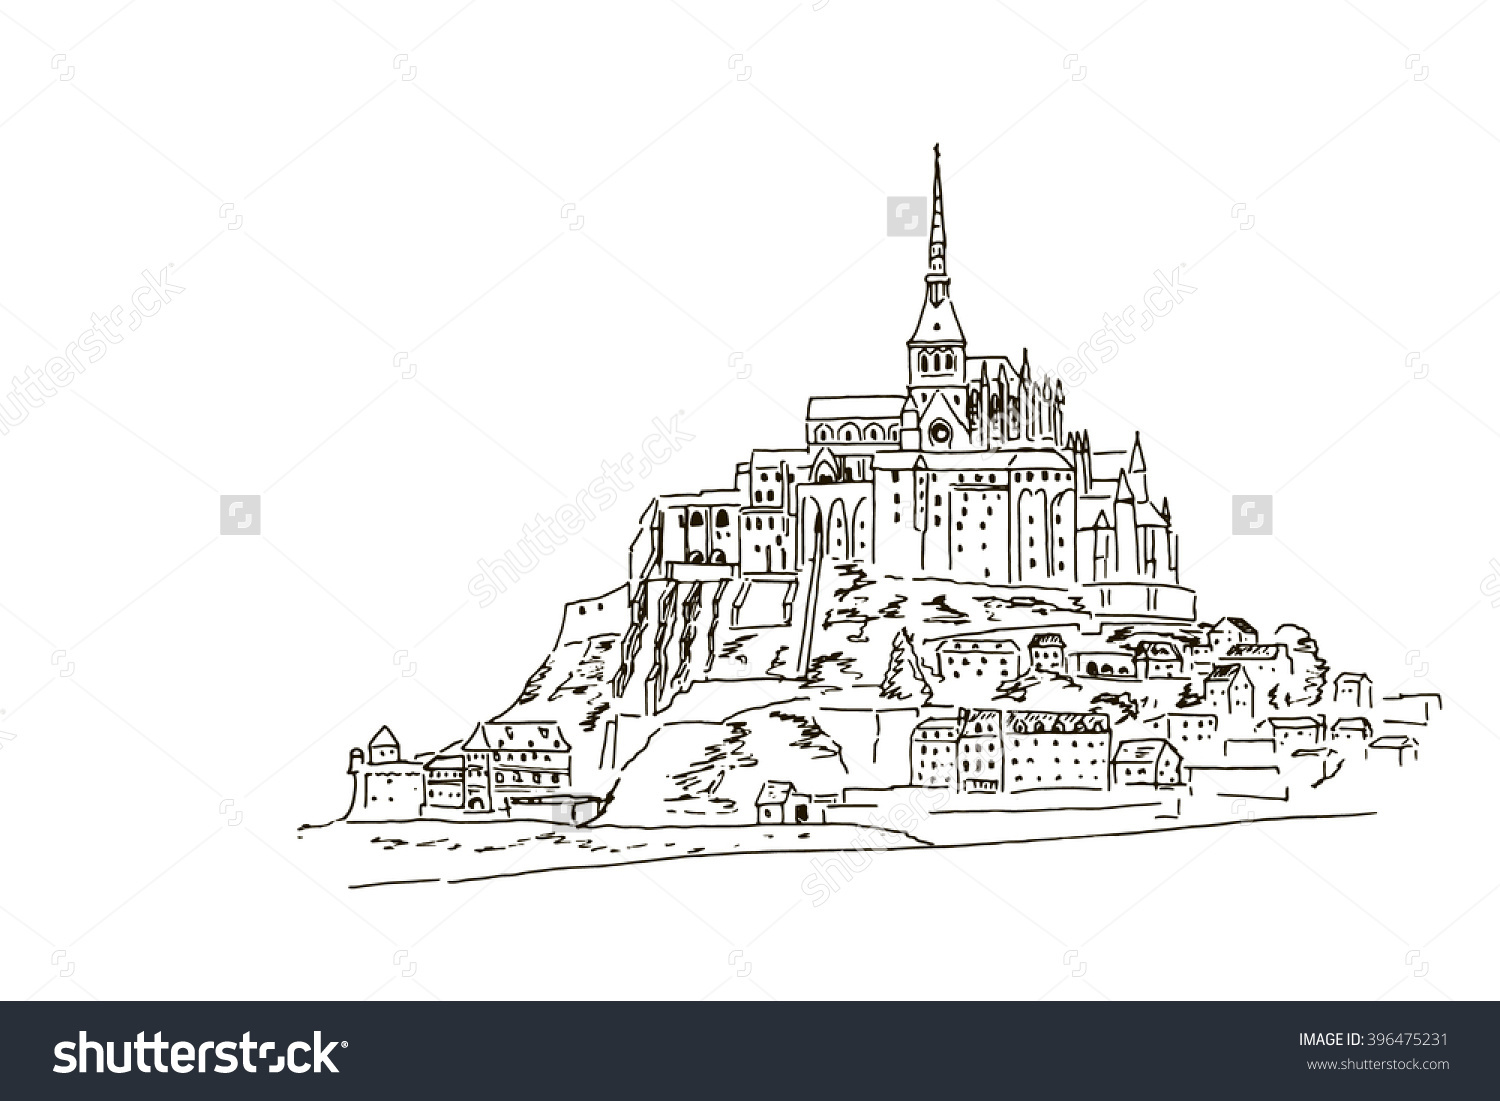 Vector Sketch Mont Saint Michel Normandy Stock Vector 396475231.